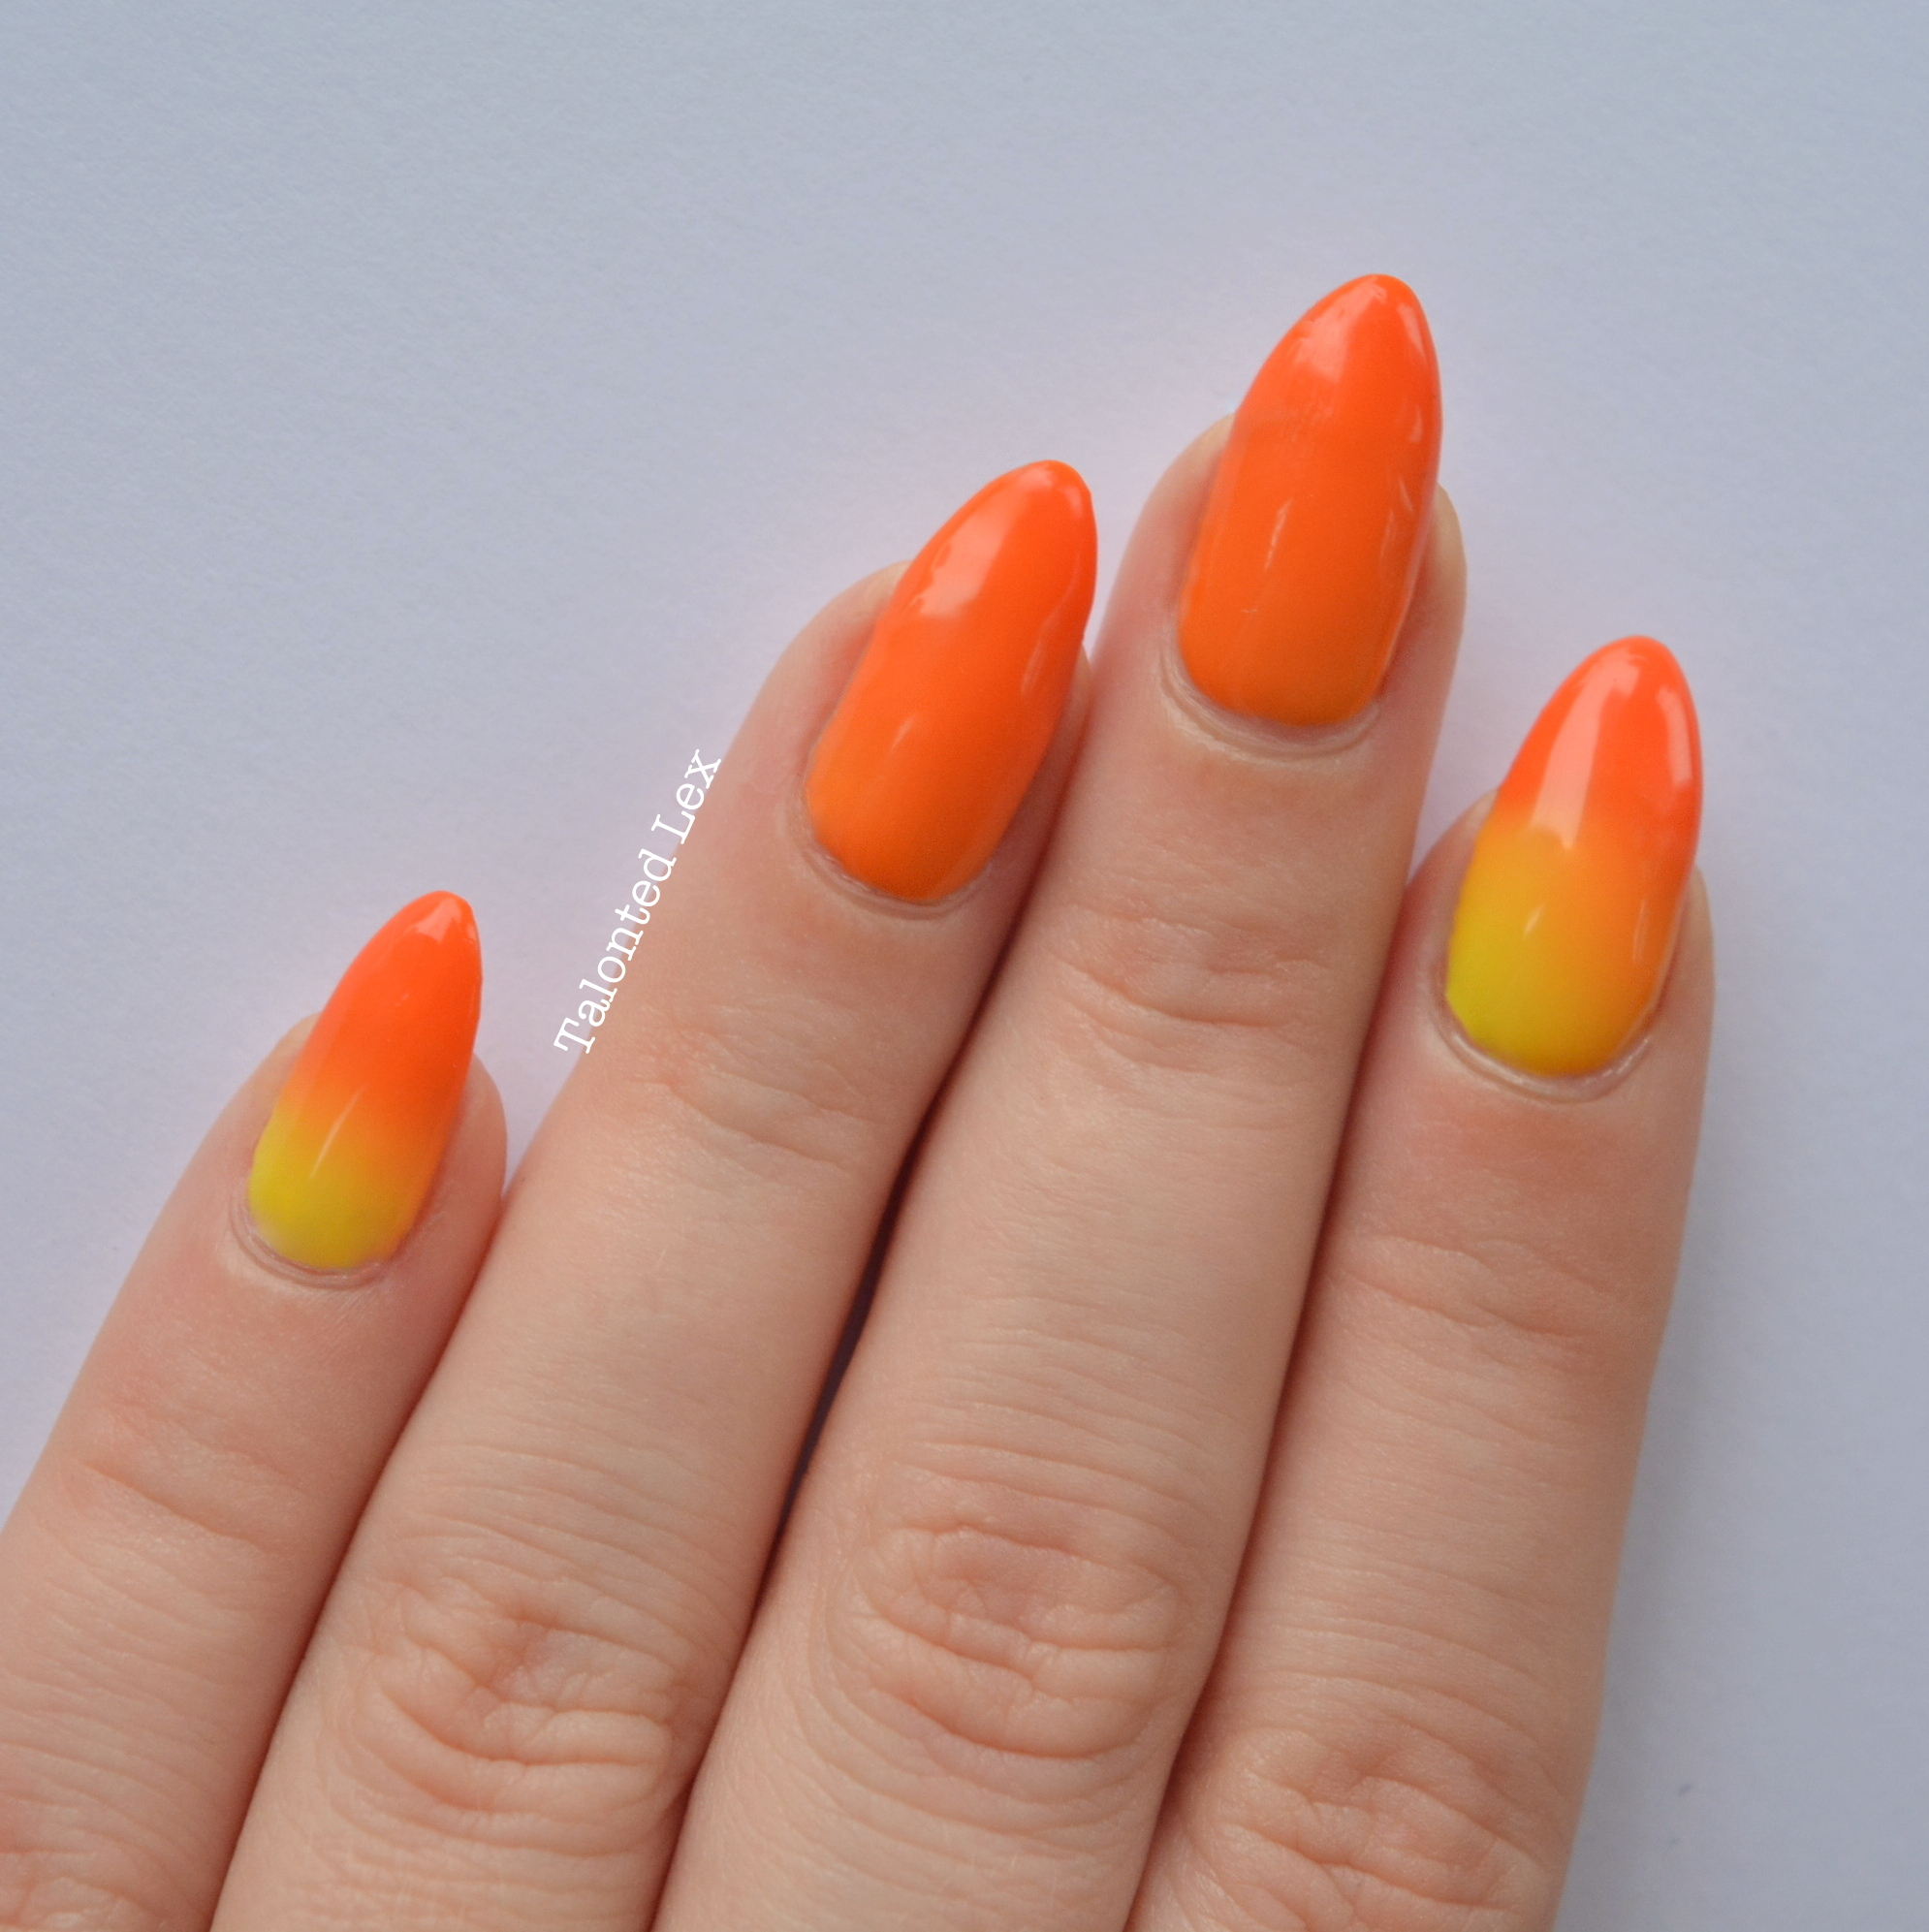 Madam-Glam-Sunshine-Color-Change-Gel-polish-review-Talonted-Lex-2